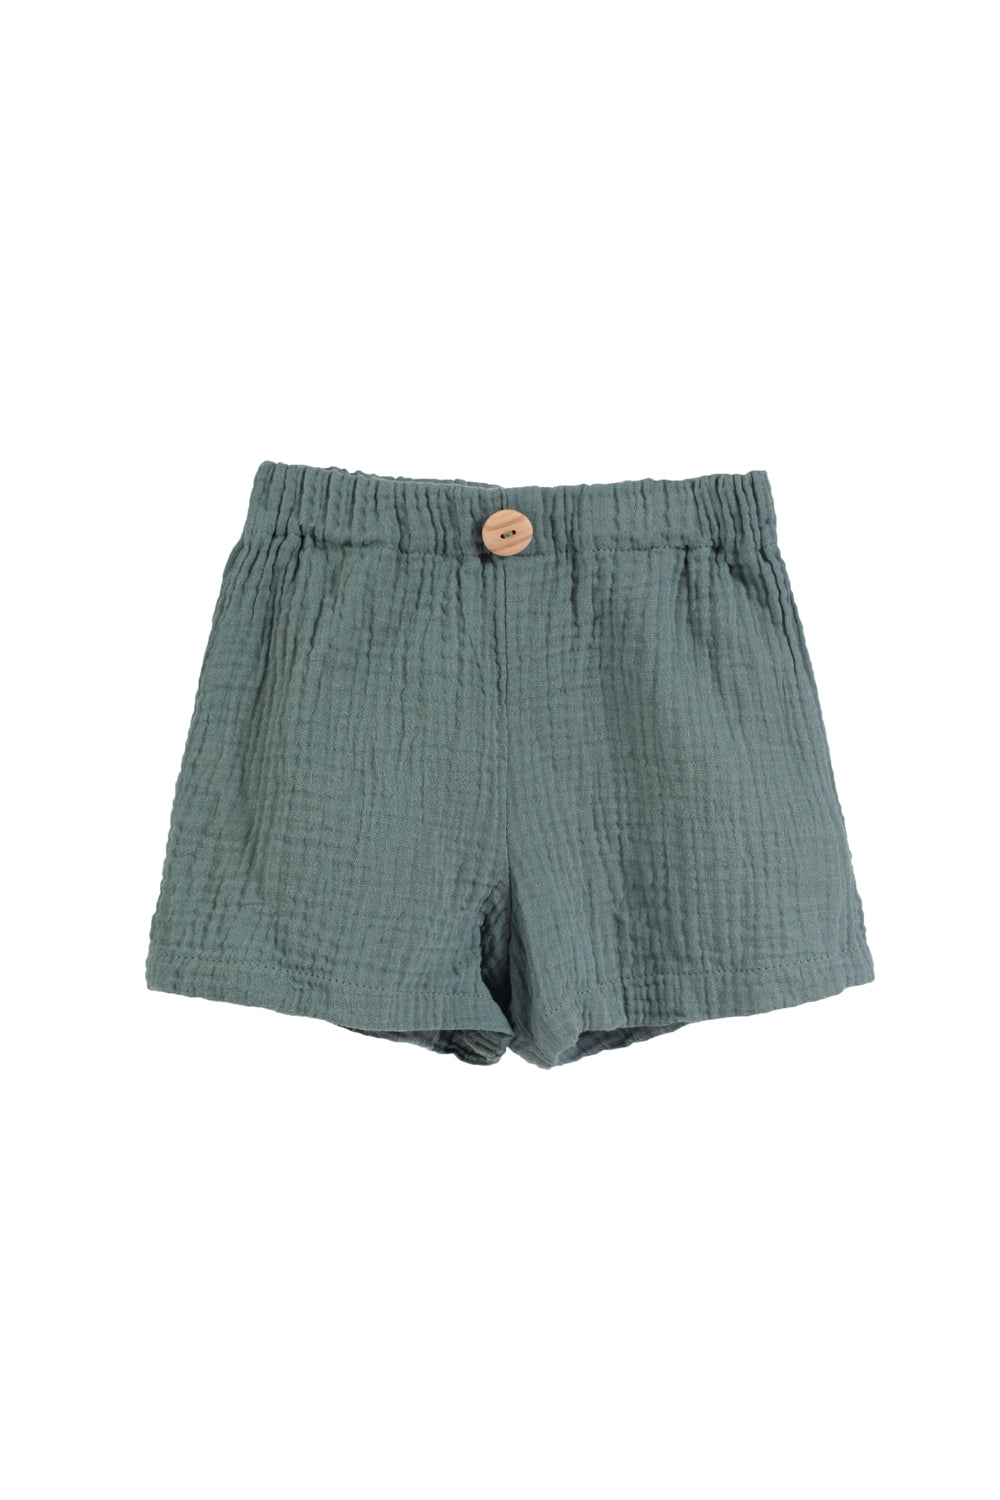 Zoo | blue sea shorts